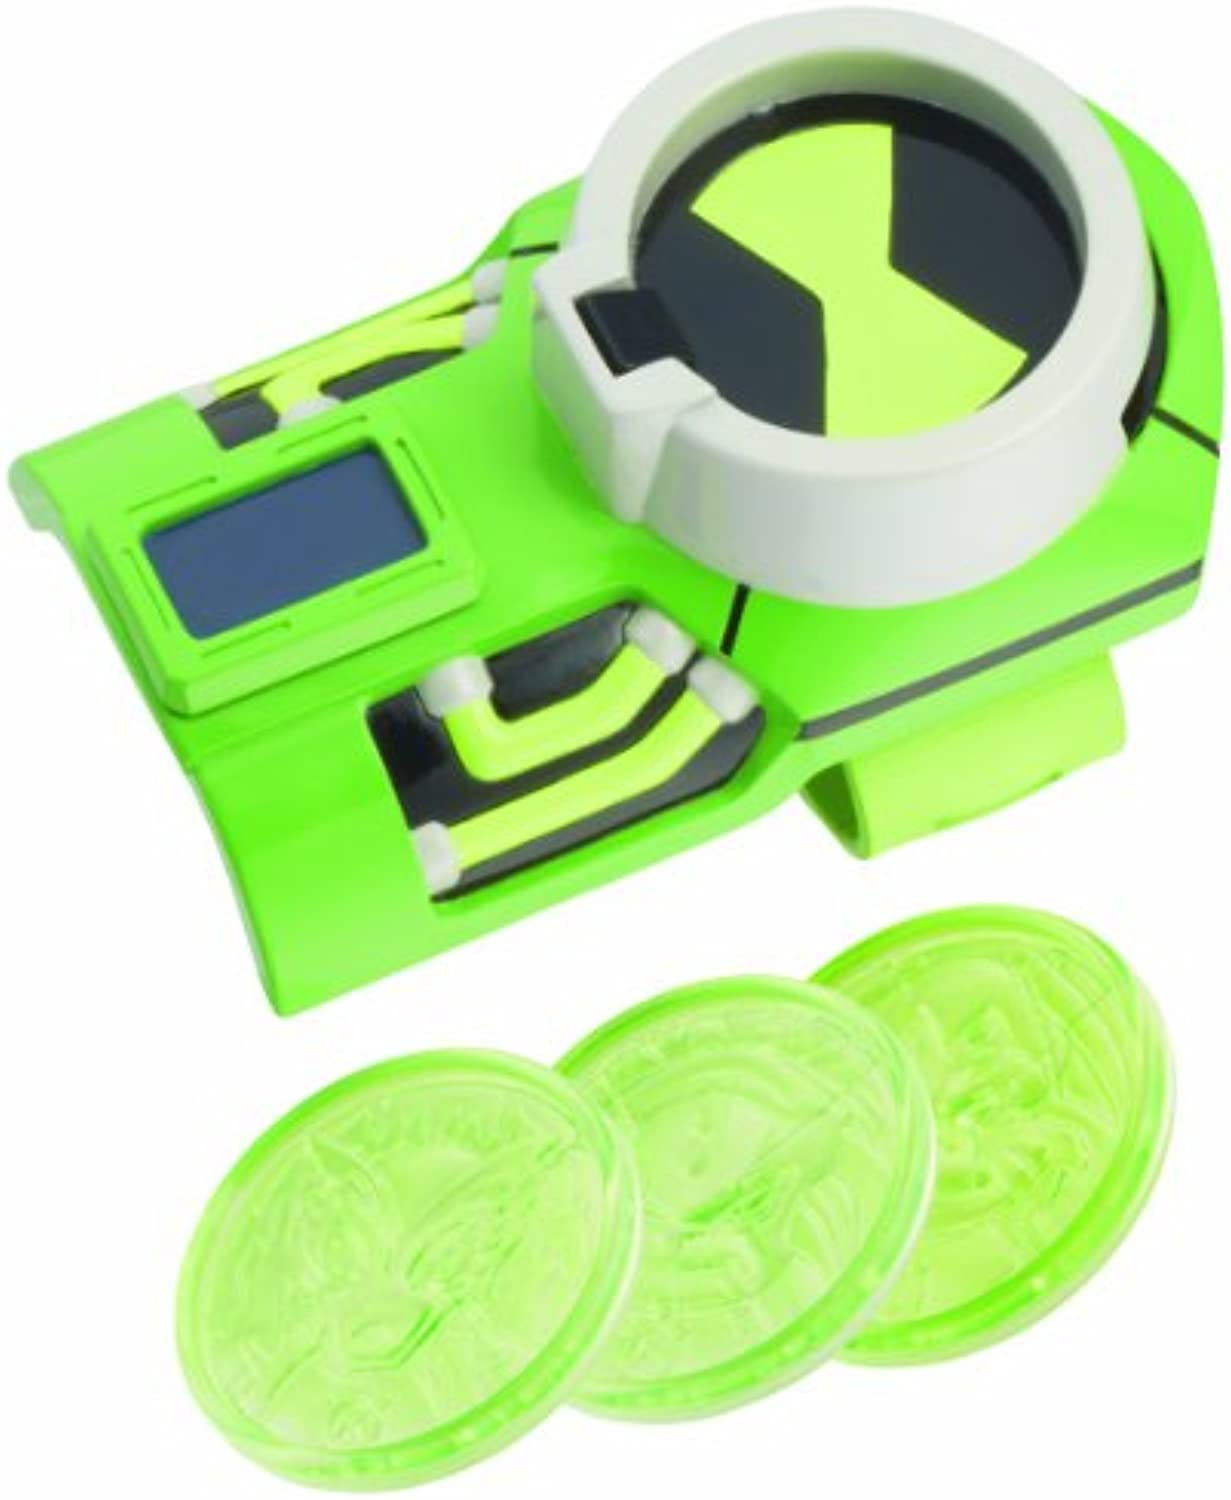 Ben10 95845 - Battle Ultimartix